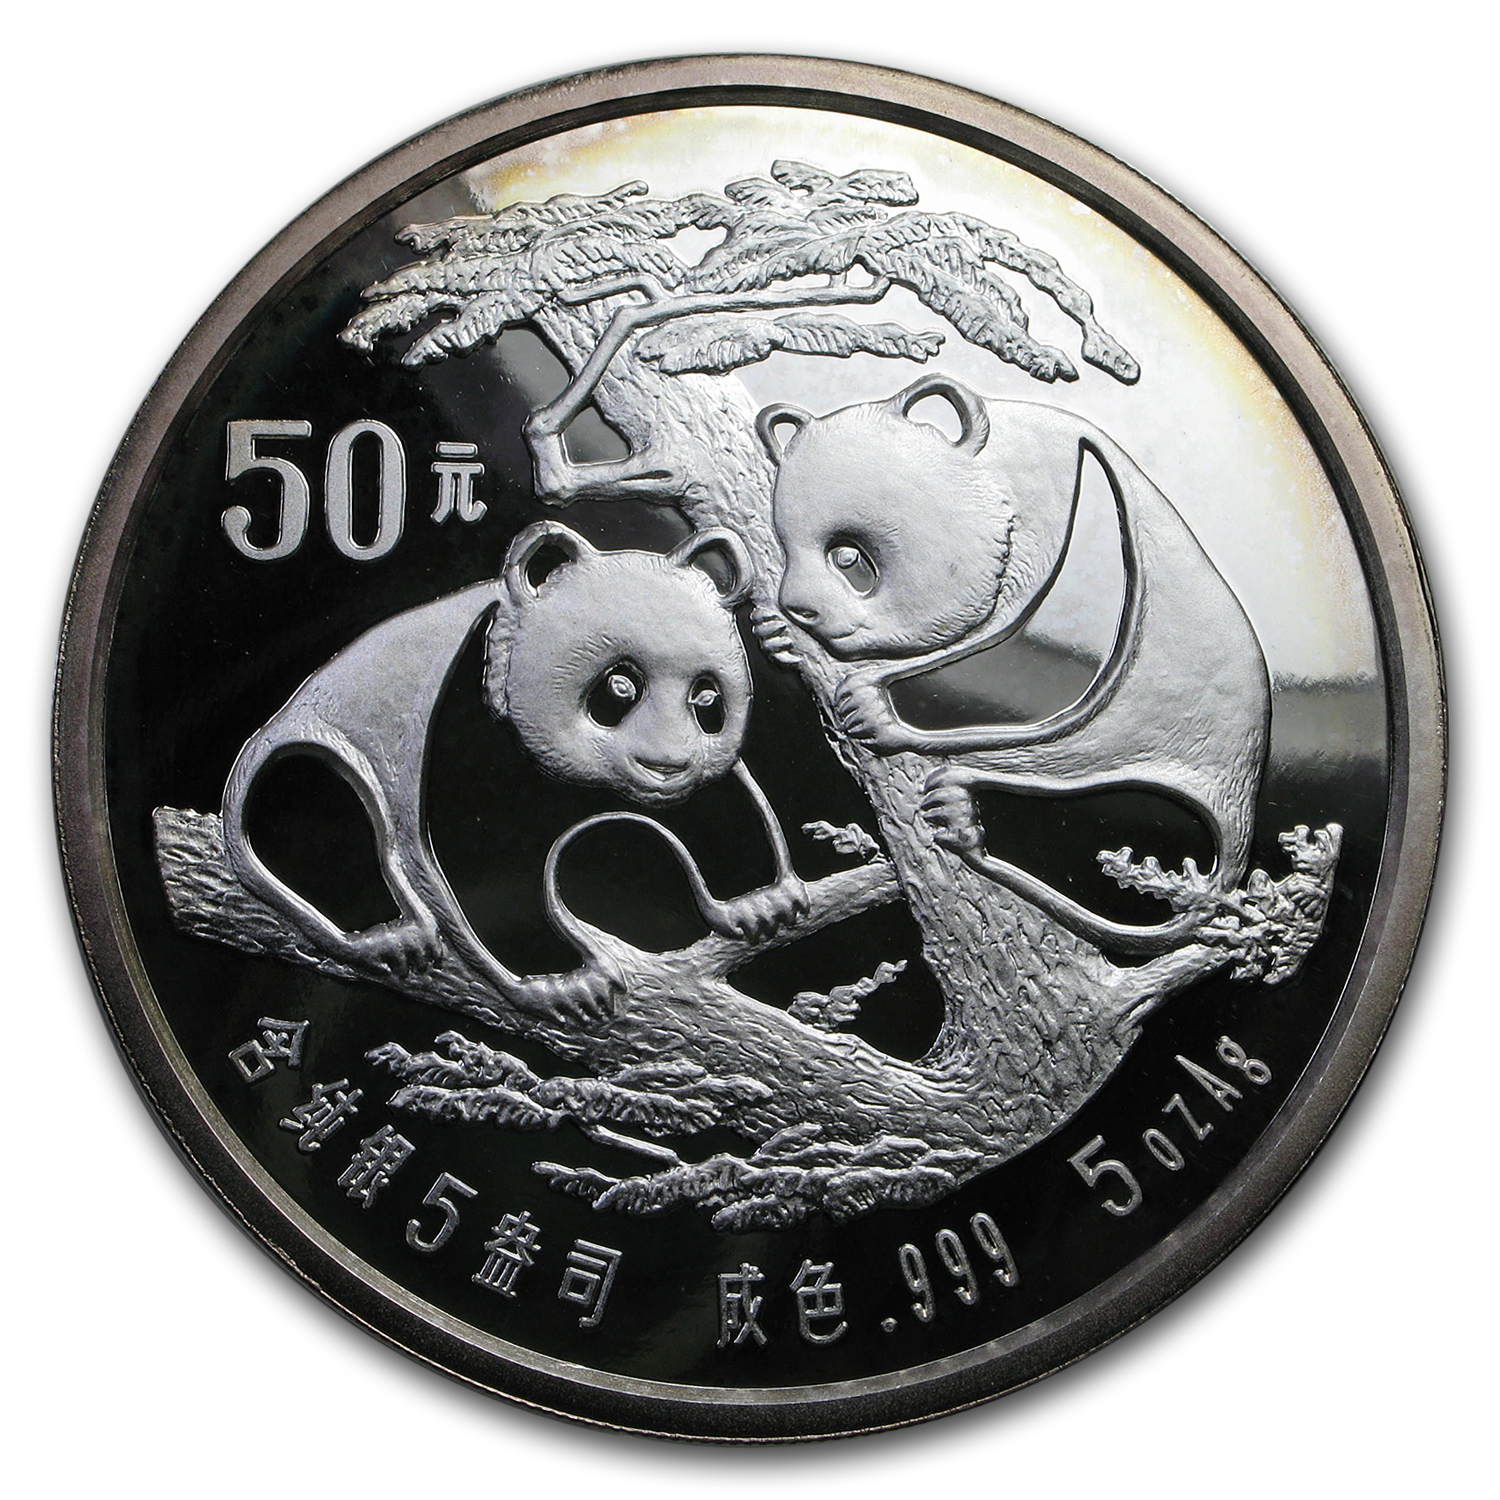 1988 China 5 oz Silver Panda Proof (Capsule only)